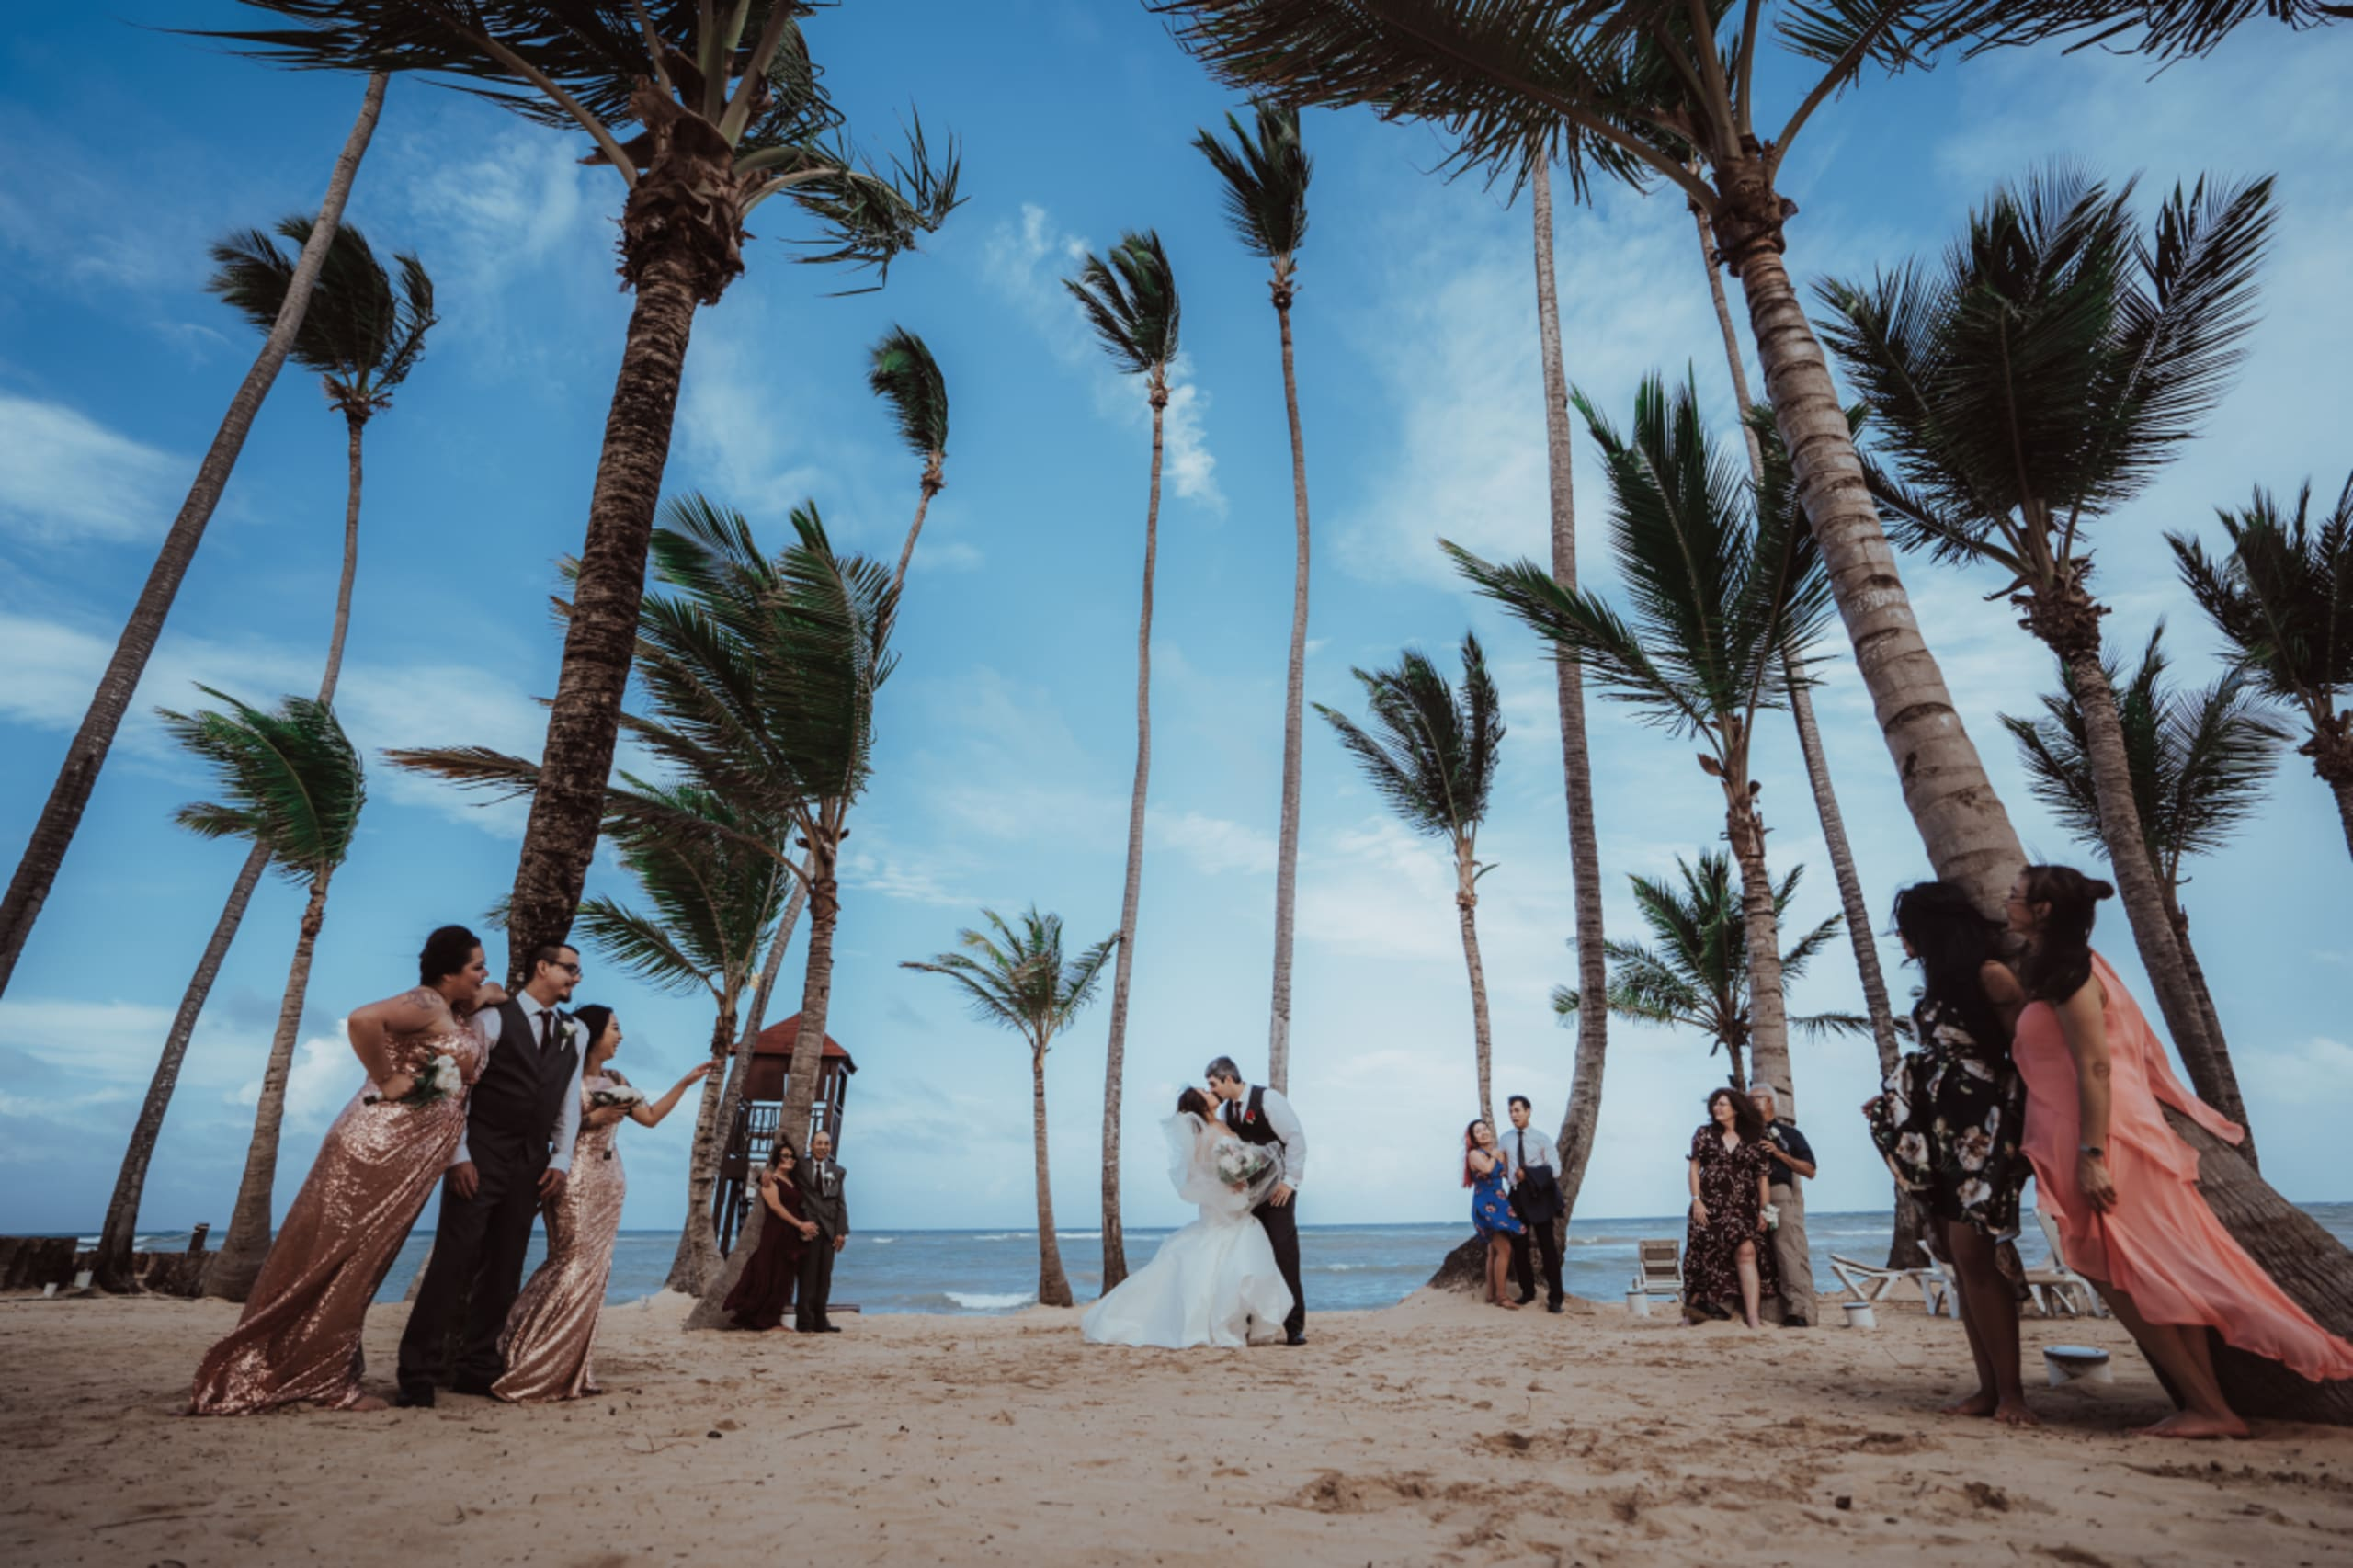 Destination Wedding Photography in Punta Cana, Dominican Republic from Rosie's Wedding